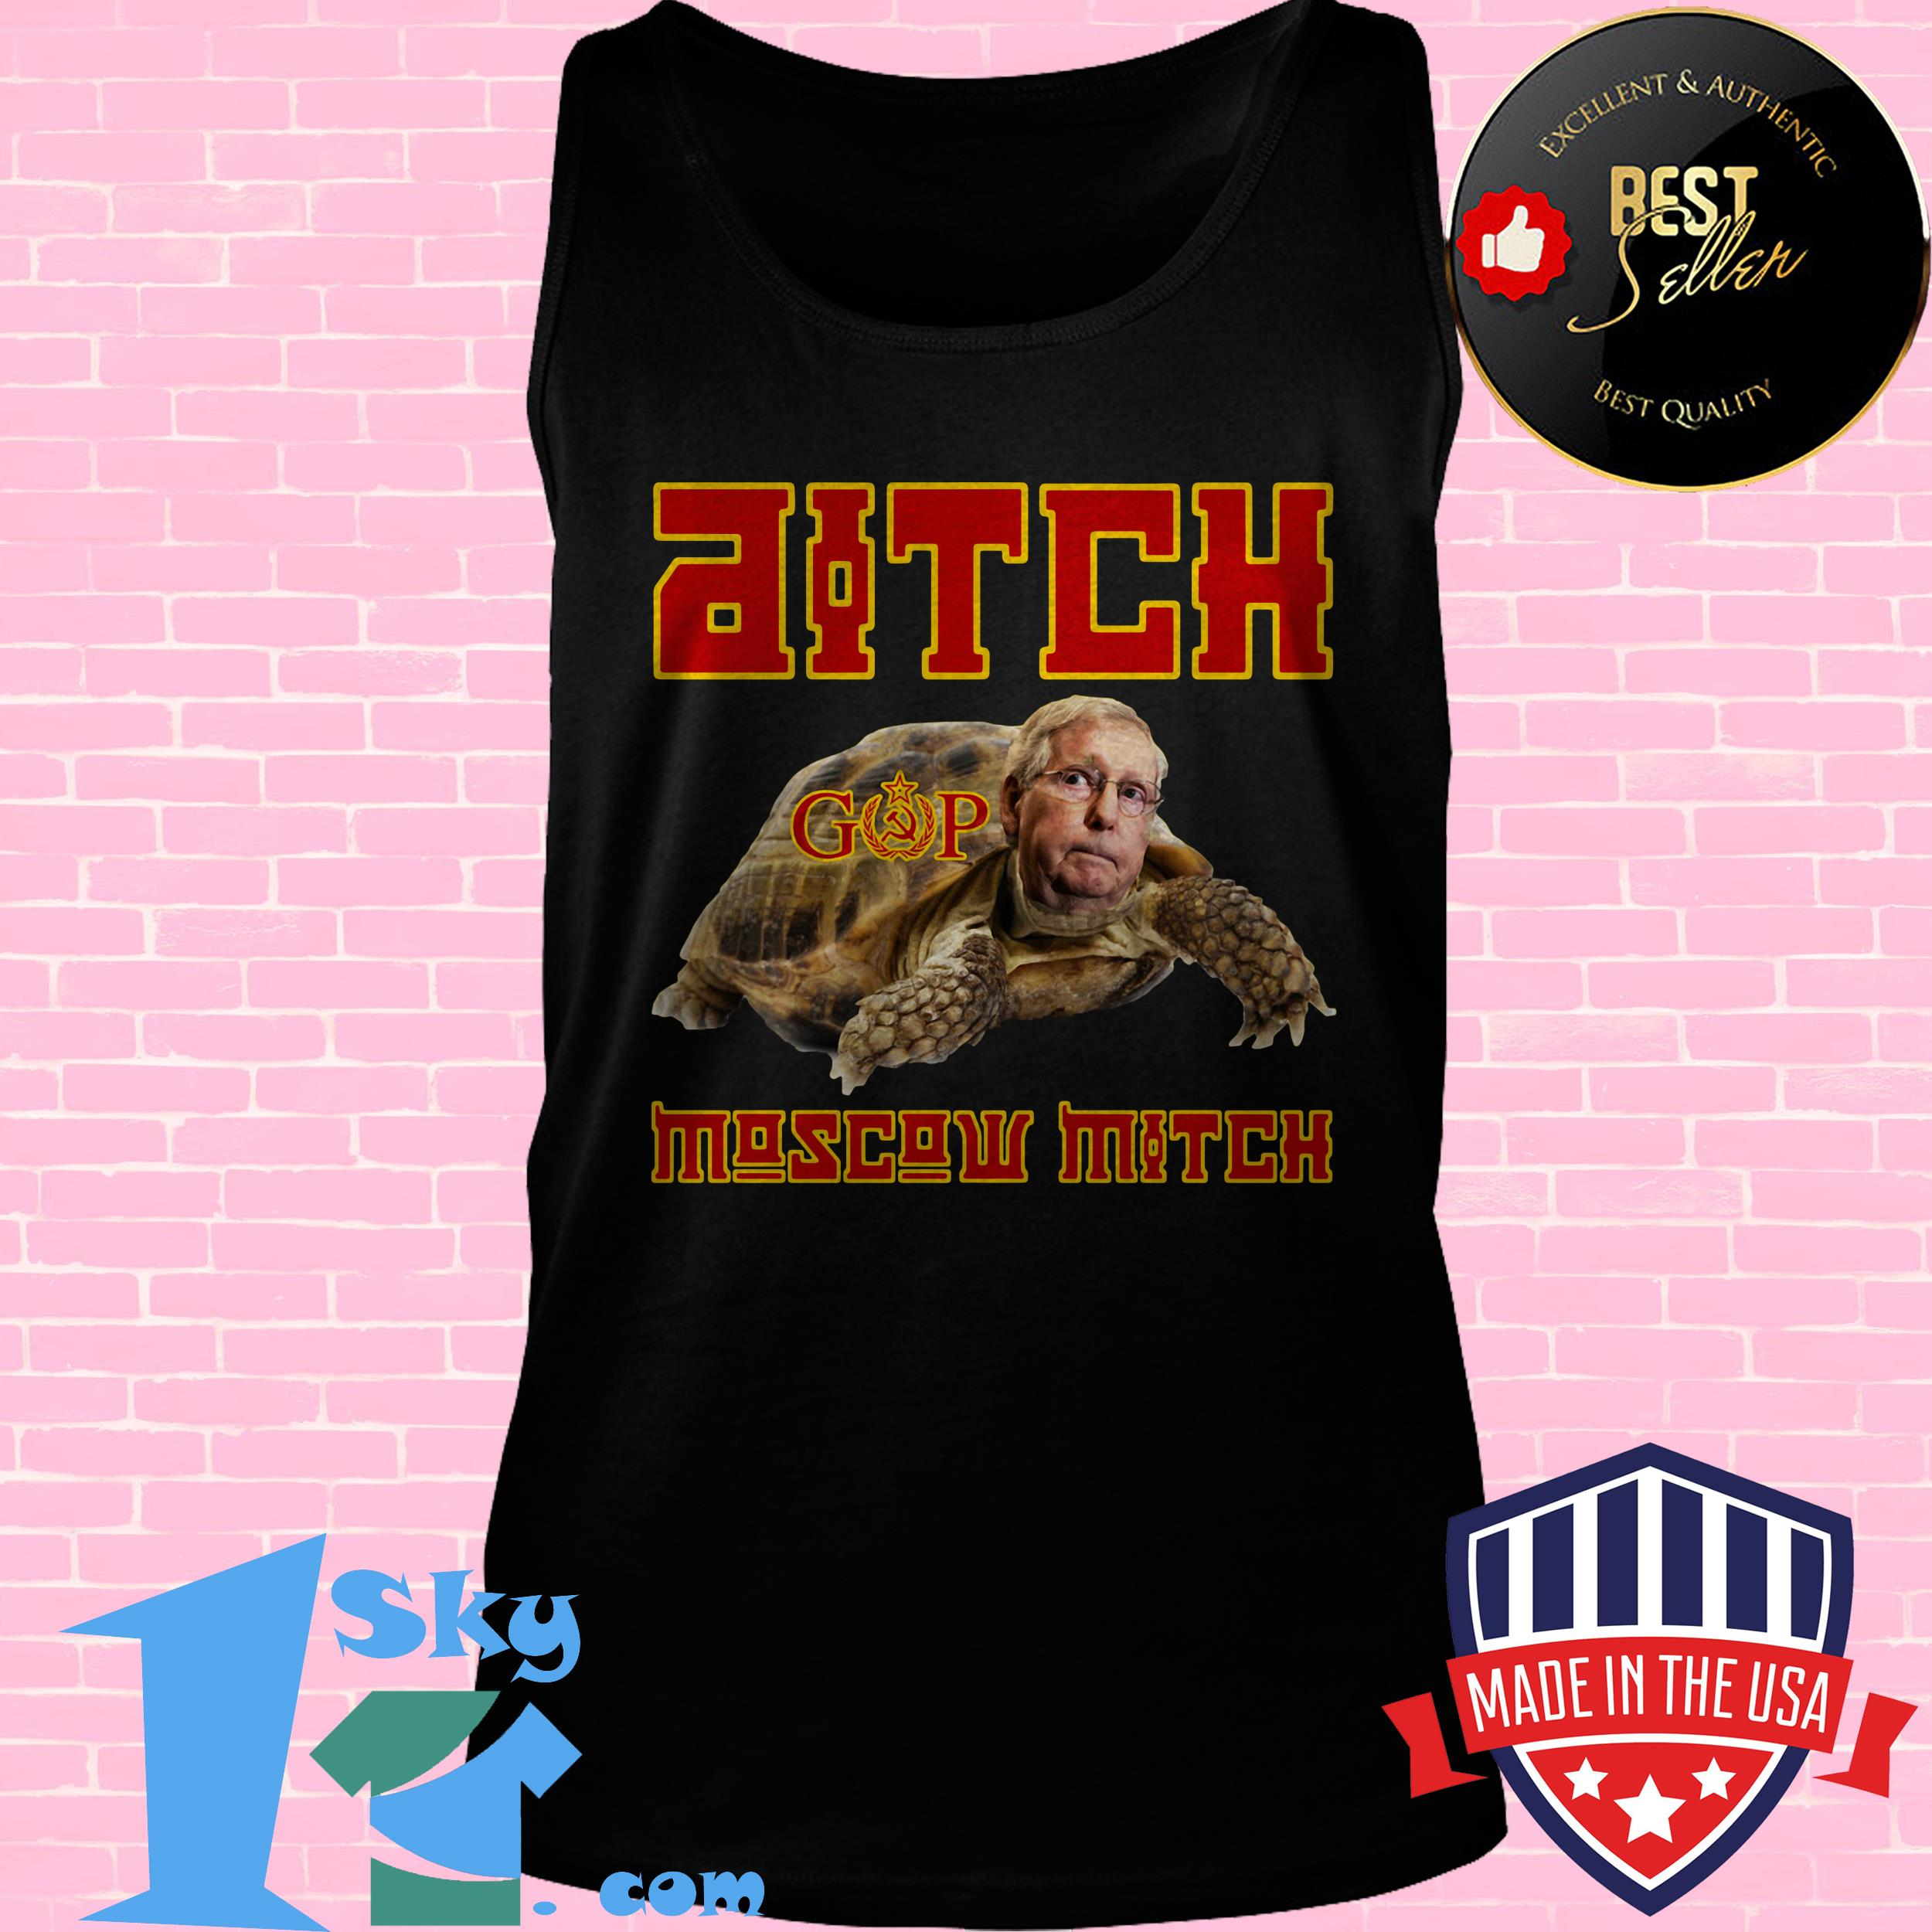 ditch moscow mitch red menace edition tank top - Ditch Moscow Mitch - Red Menace Edition shirt